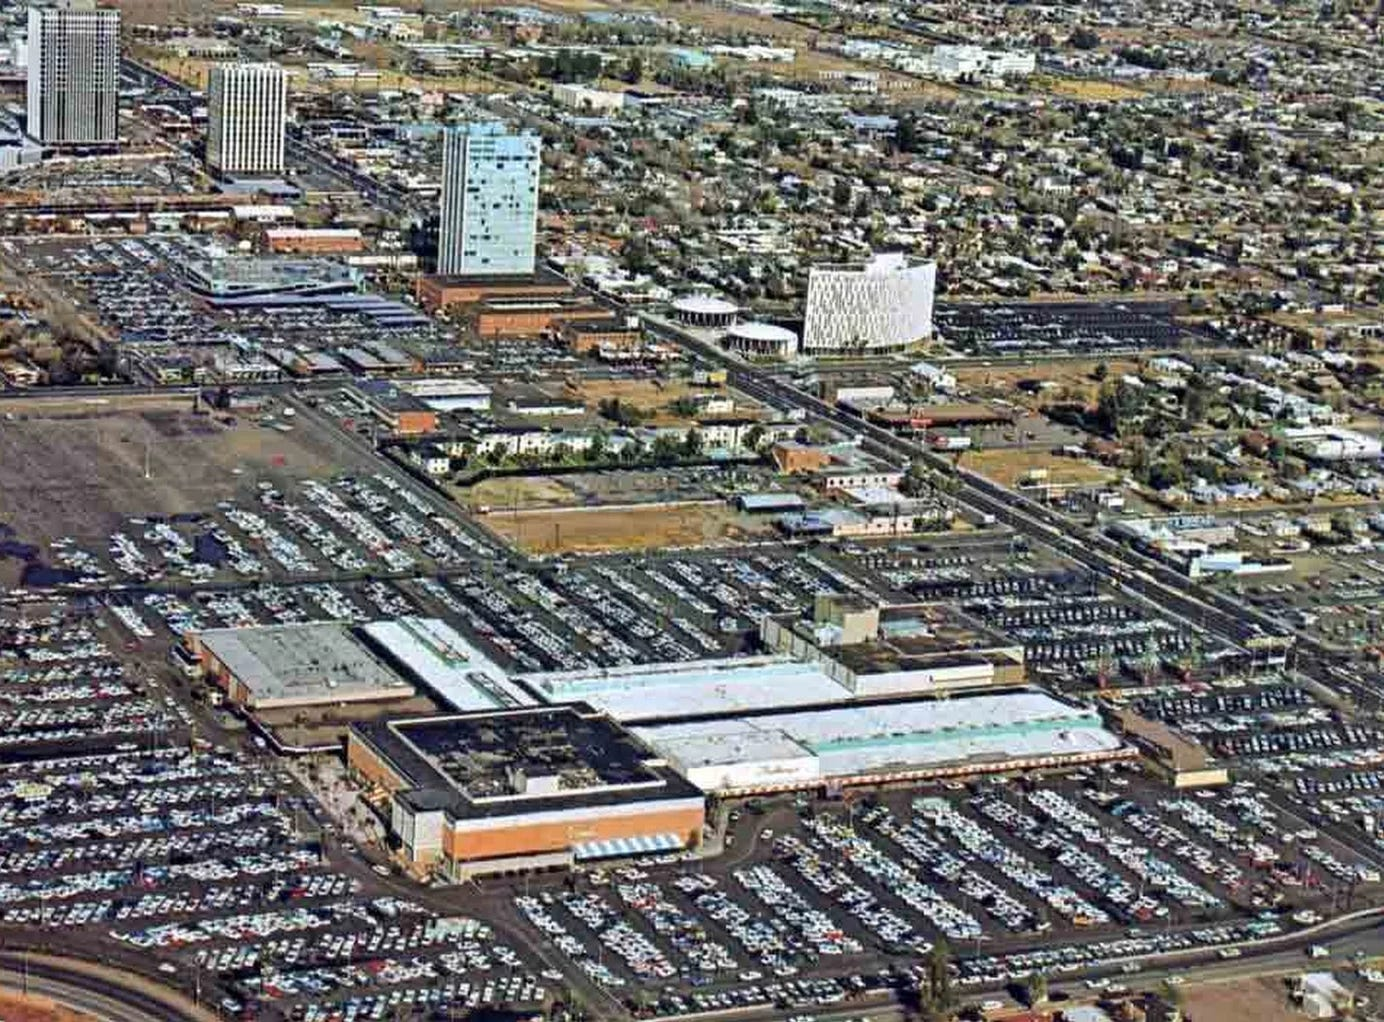 After the end of World War II, more families had cars and disposable income, and soon shopping centers like Park Central Mall in Phoenix sprung up. It's seen here in the 1960s.